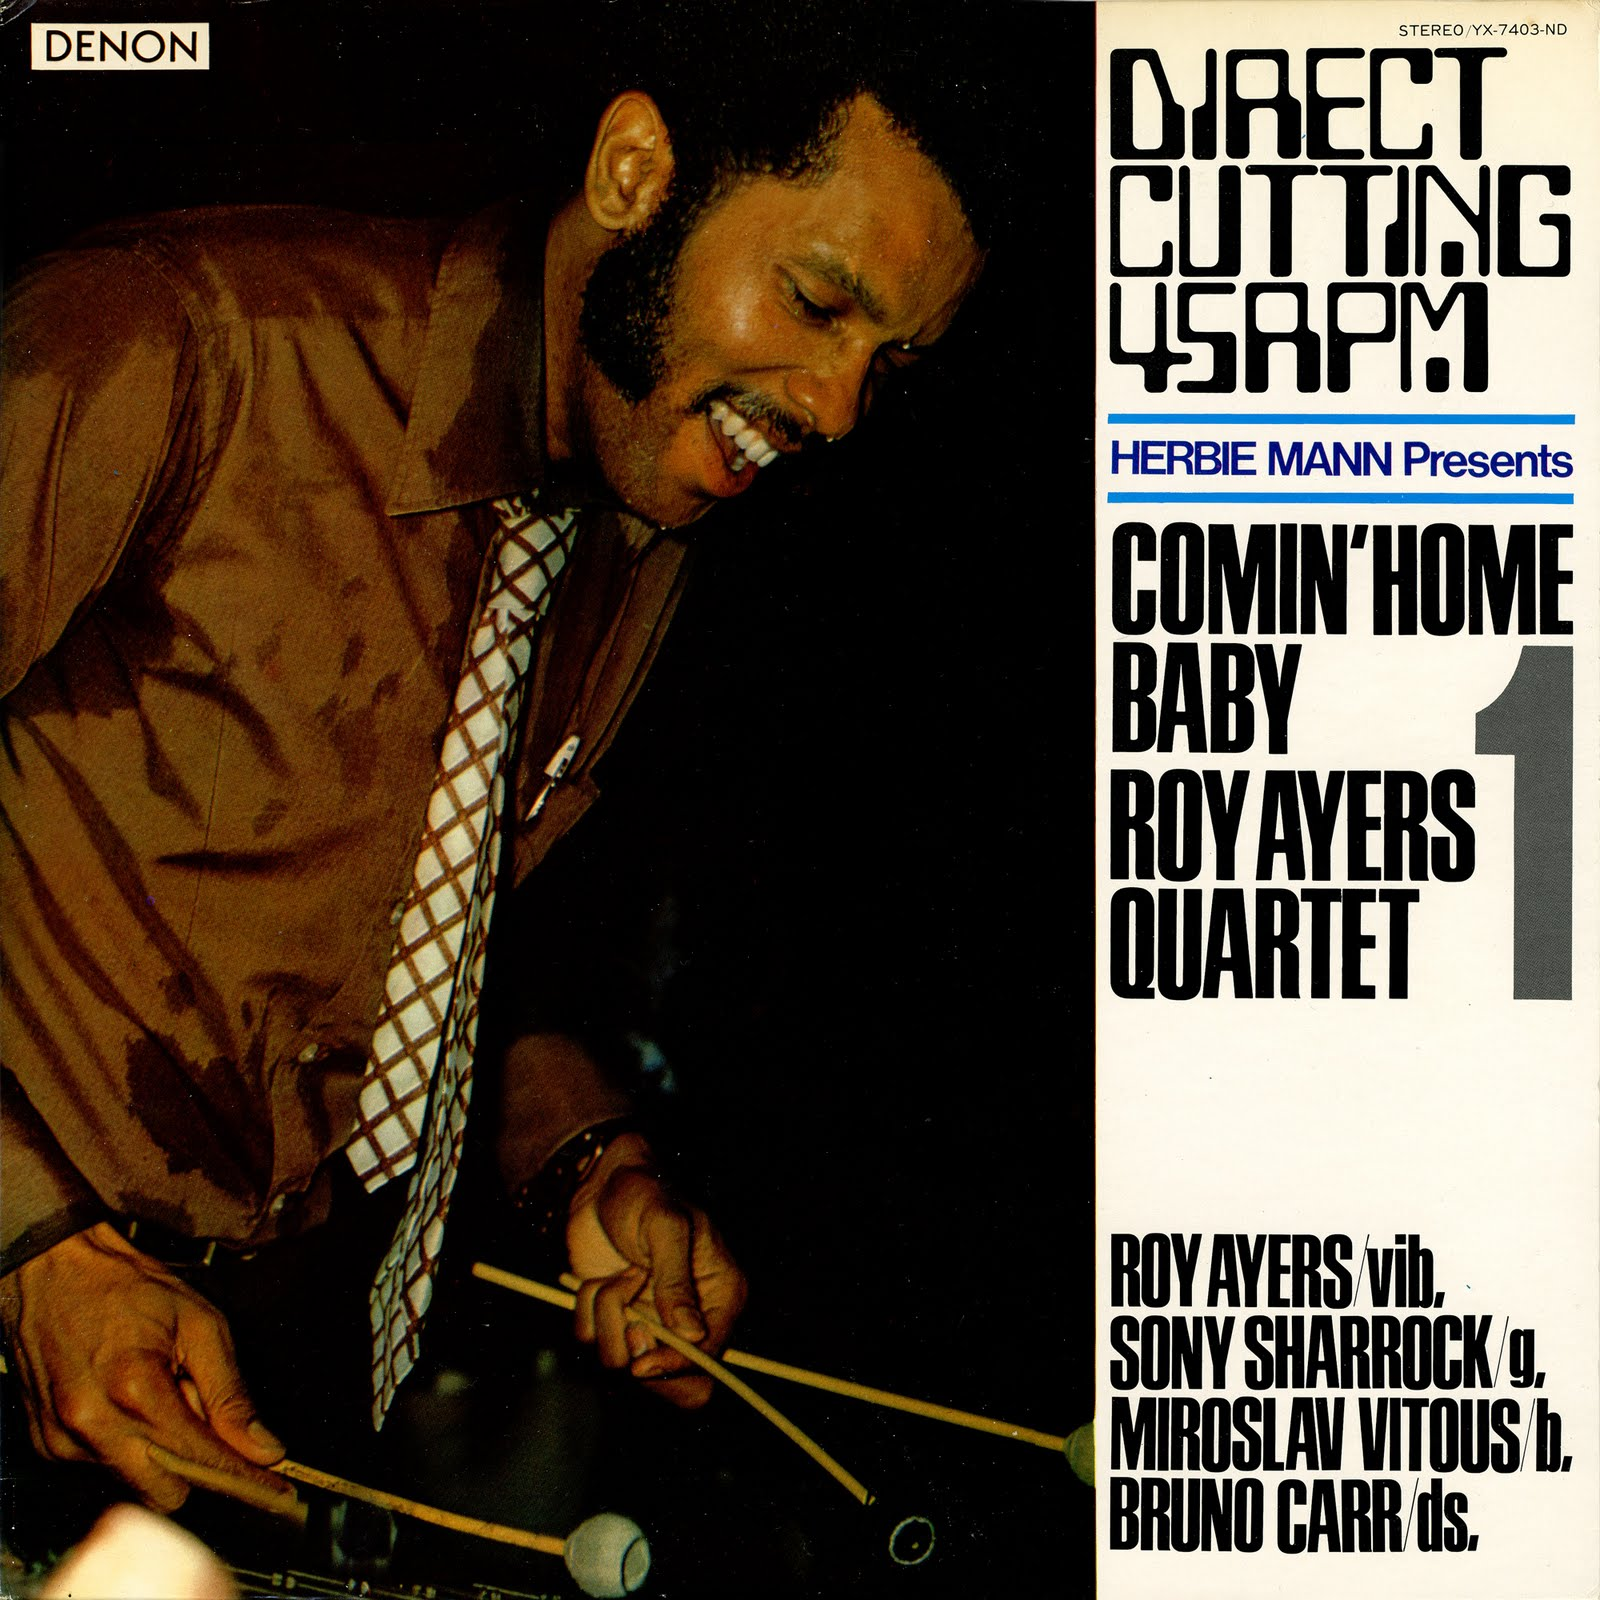 Roy Ayers Quartet Comin Home Baby